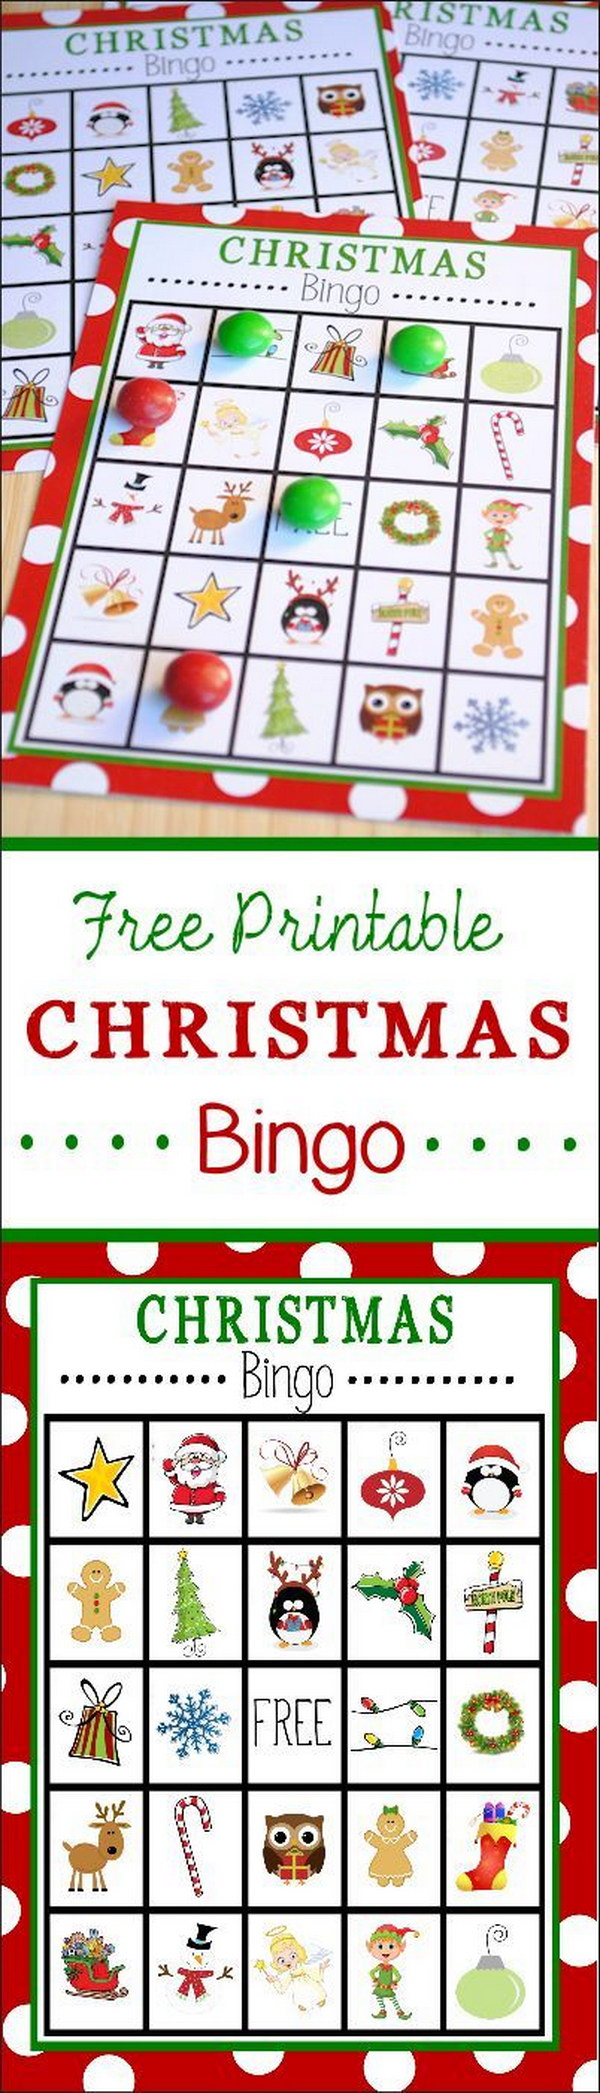 Christmas Classroom Decoration Printables ~ Holiday party games and activities for kids